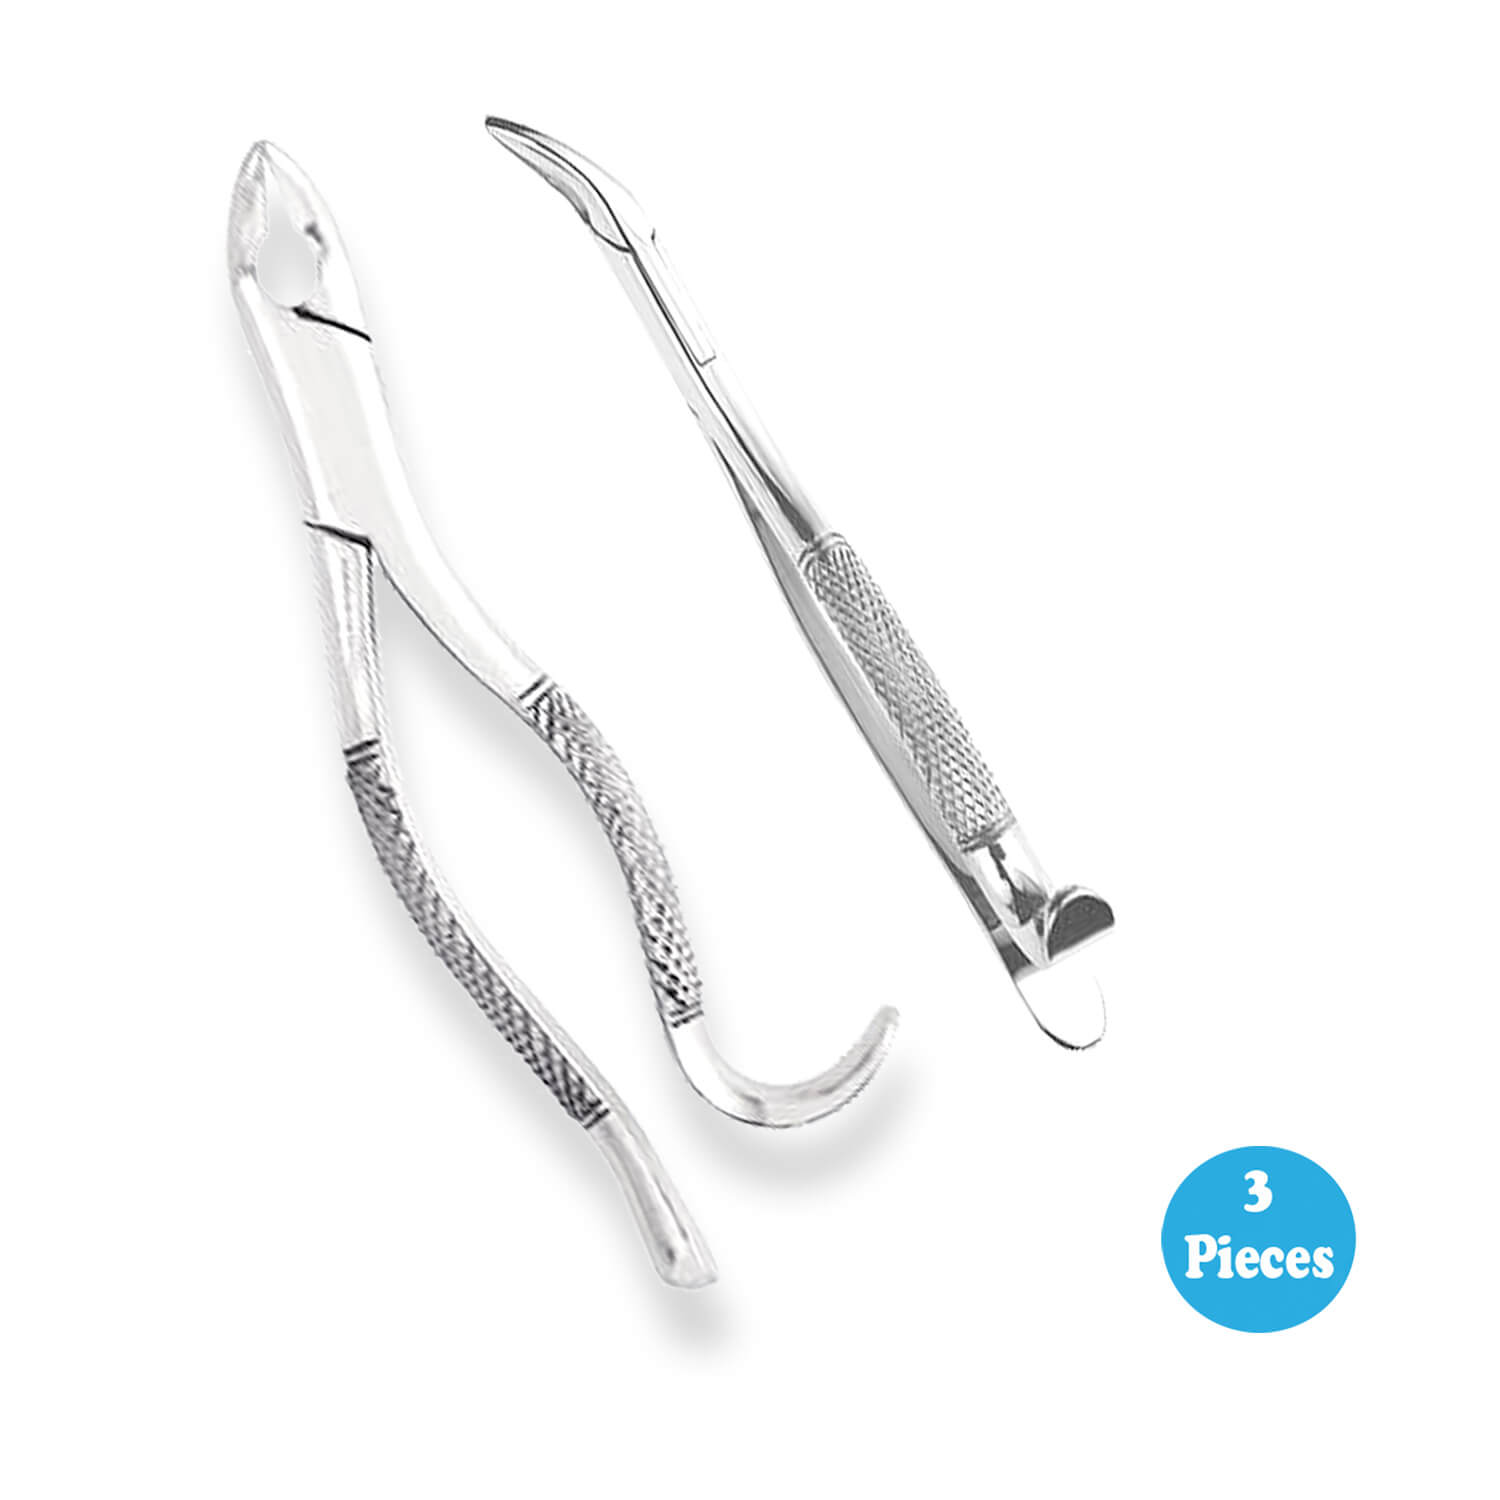 3 Tooth Extraction forceps #288 Surgical Dental Instruments